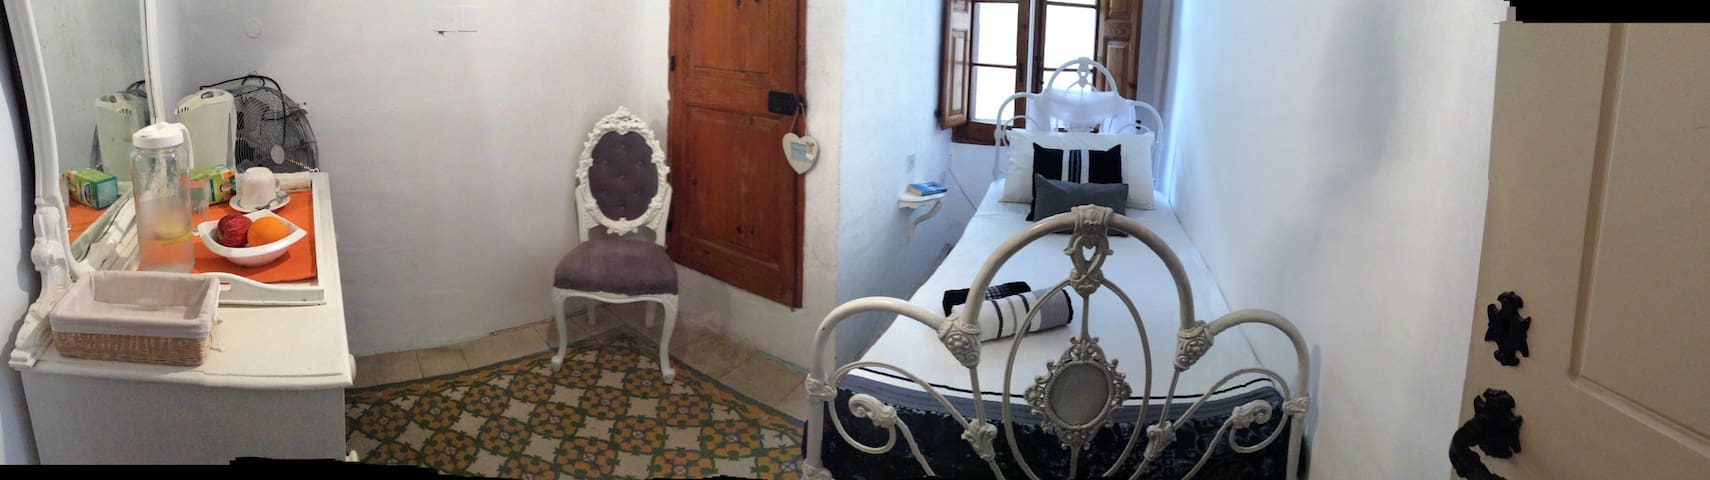 Cosy refuge for one! - Il-Gżira - House